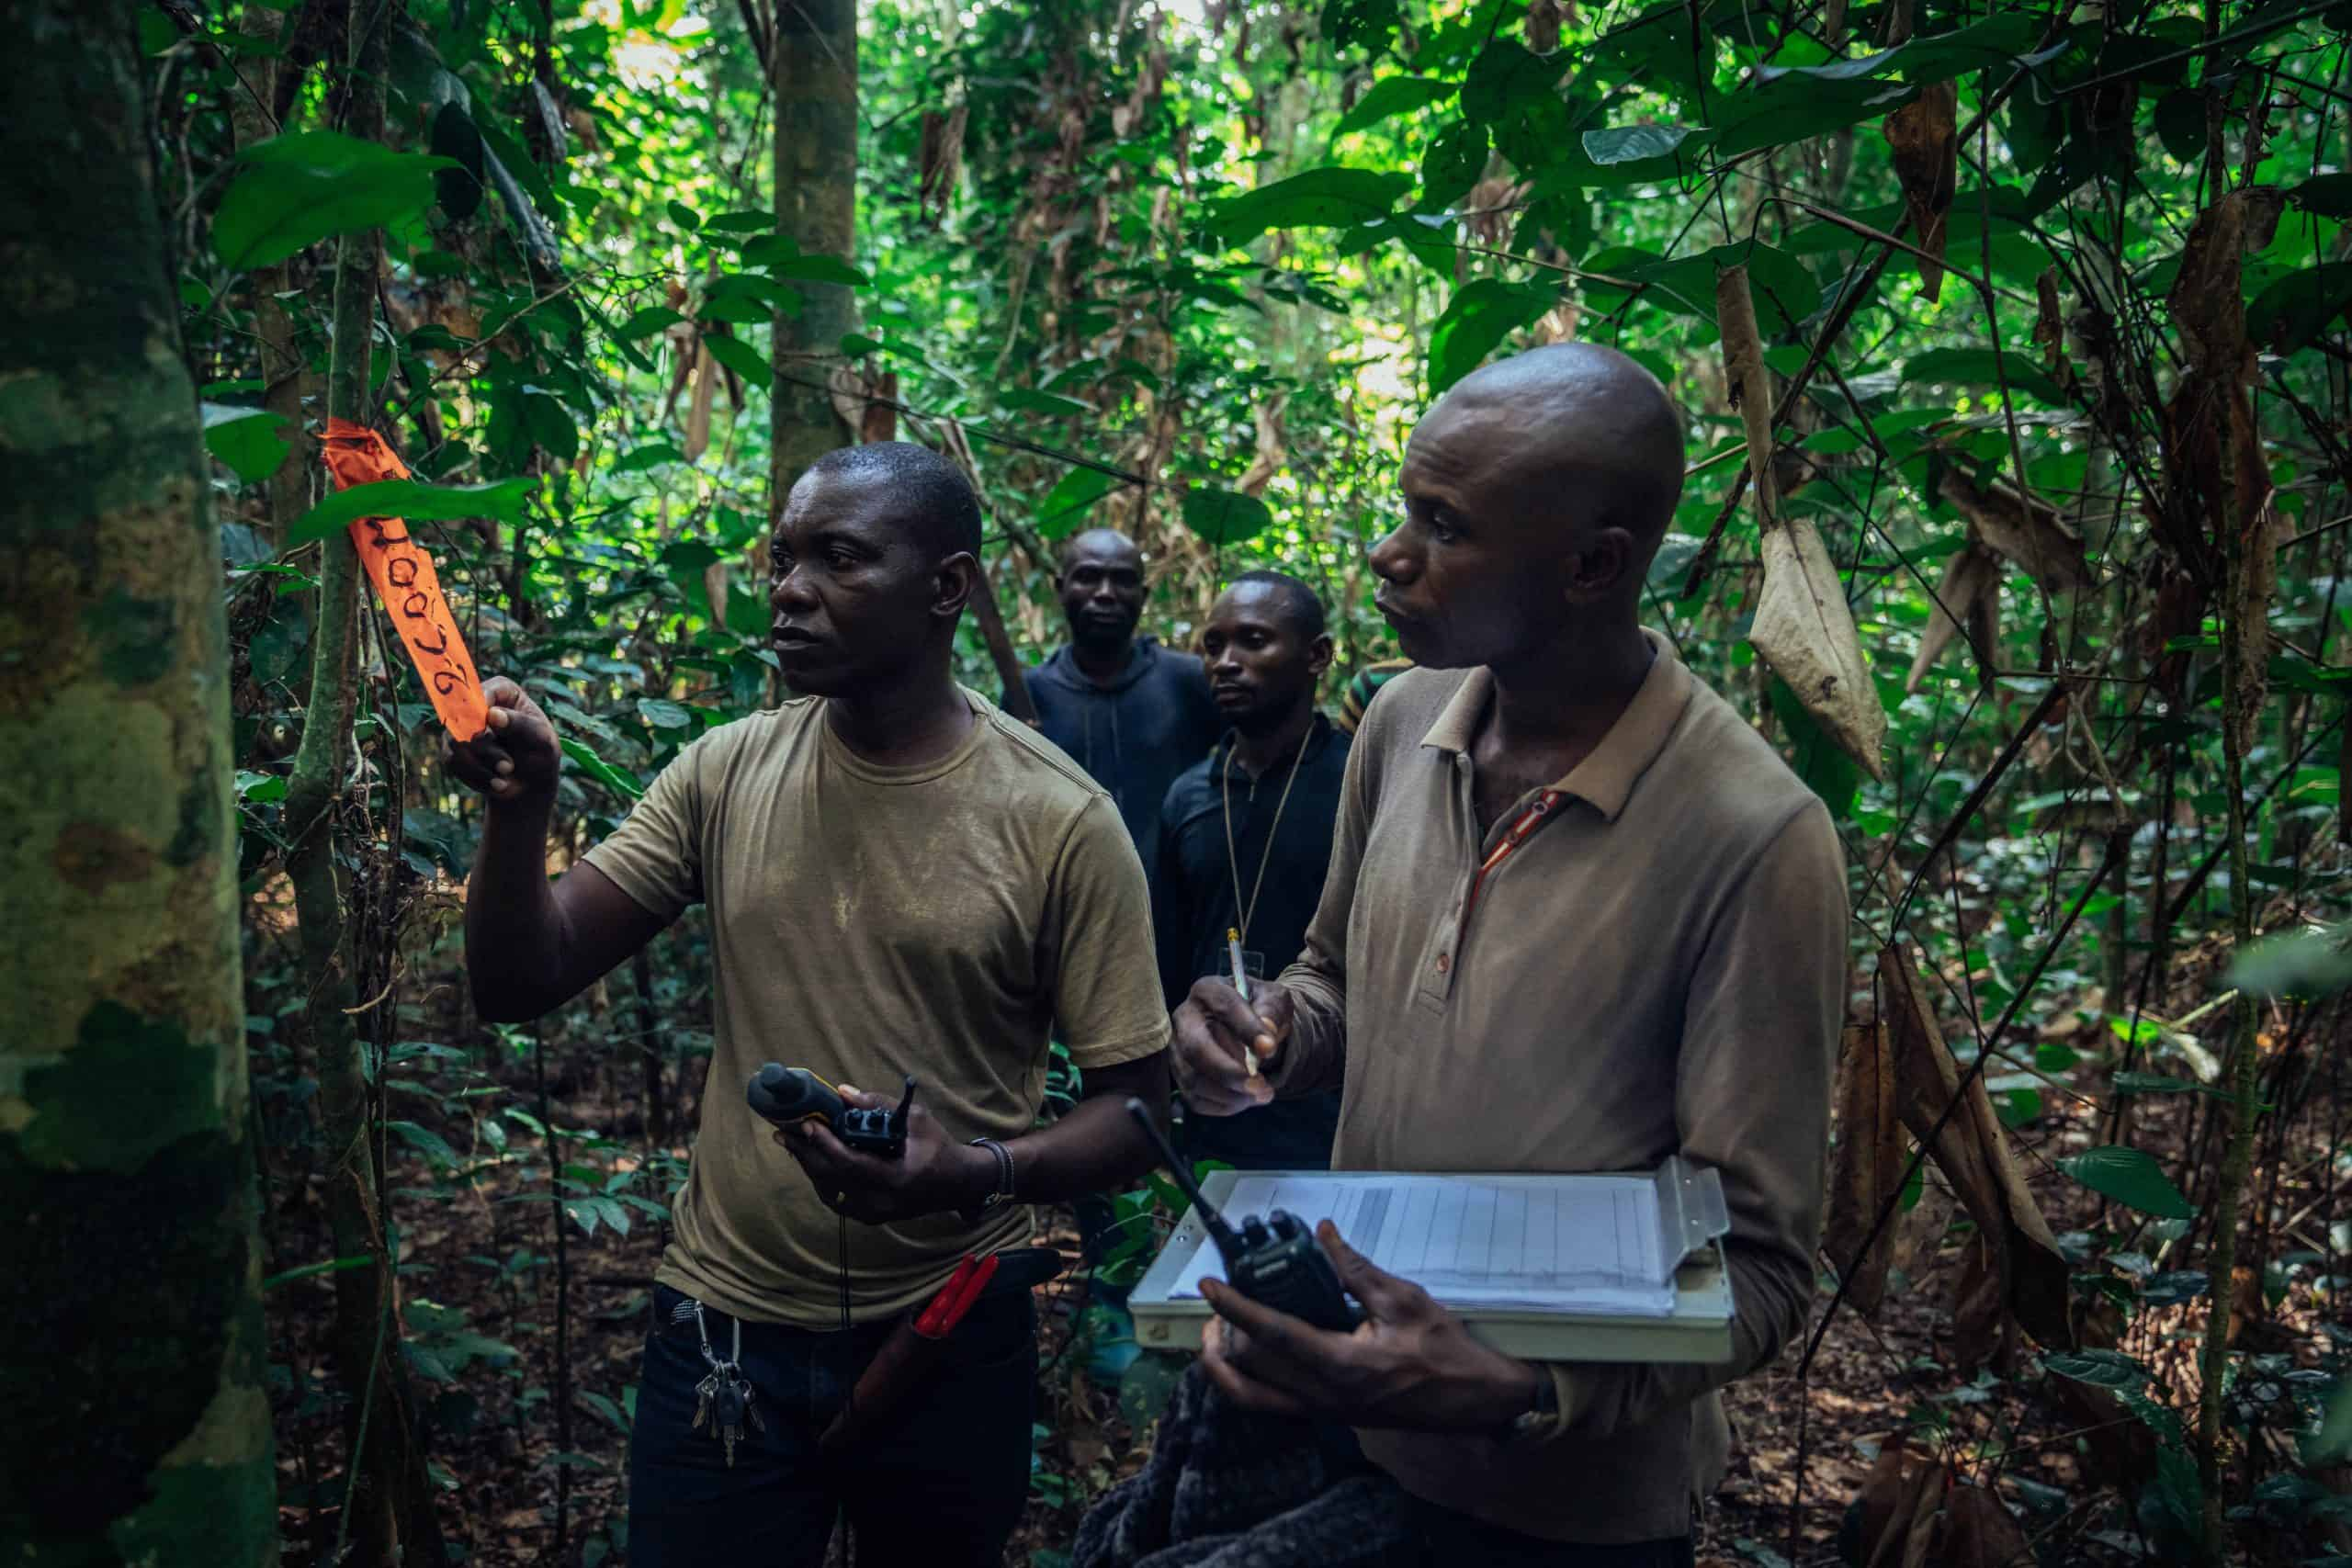 Foresters monitoring and flagging trees in the Mai Ndombe project, DRC. Photo credit: Filip C. Agoo for Wildlife Works Carbon.